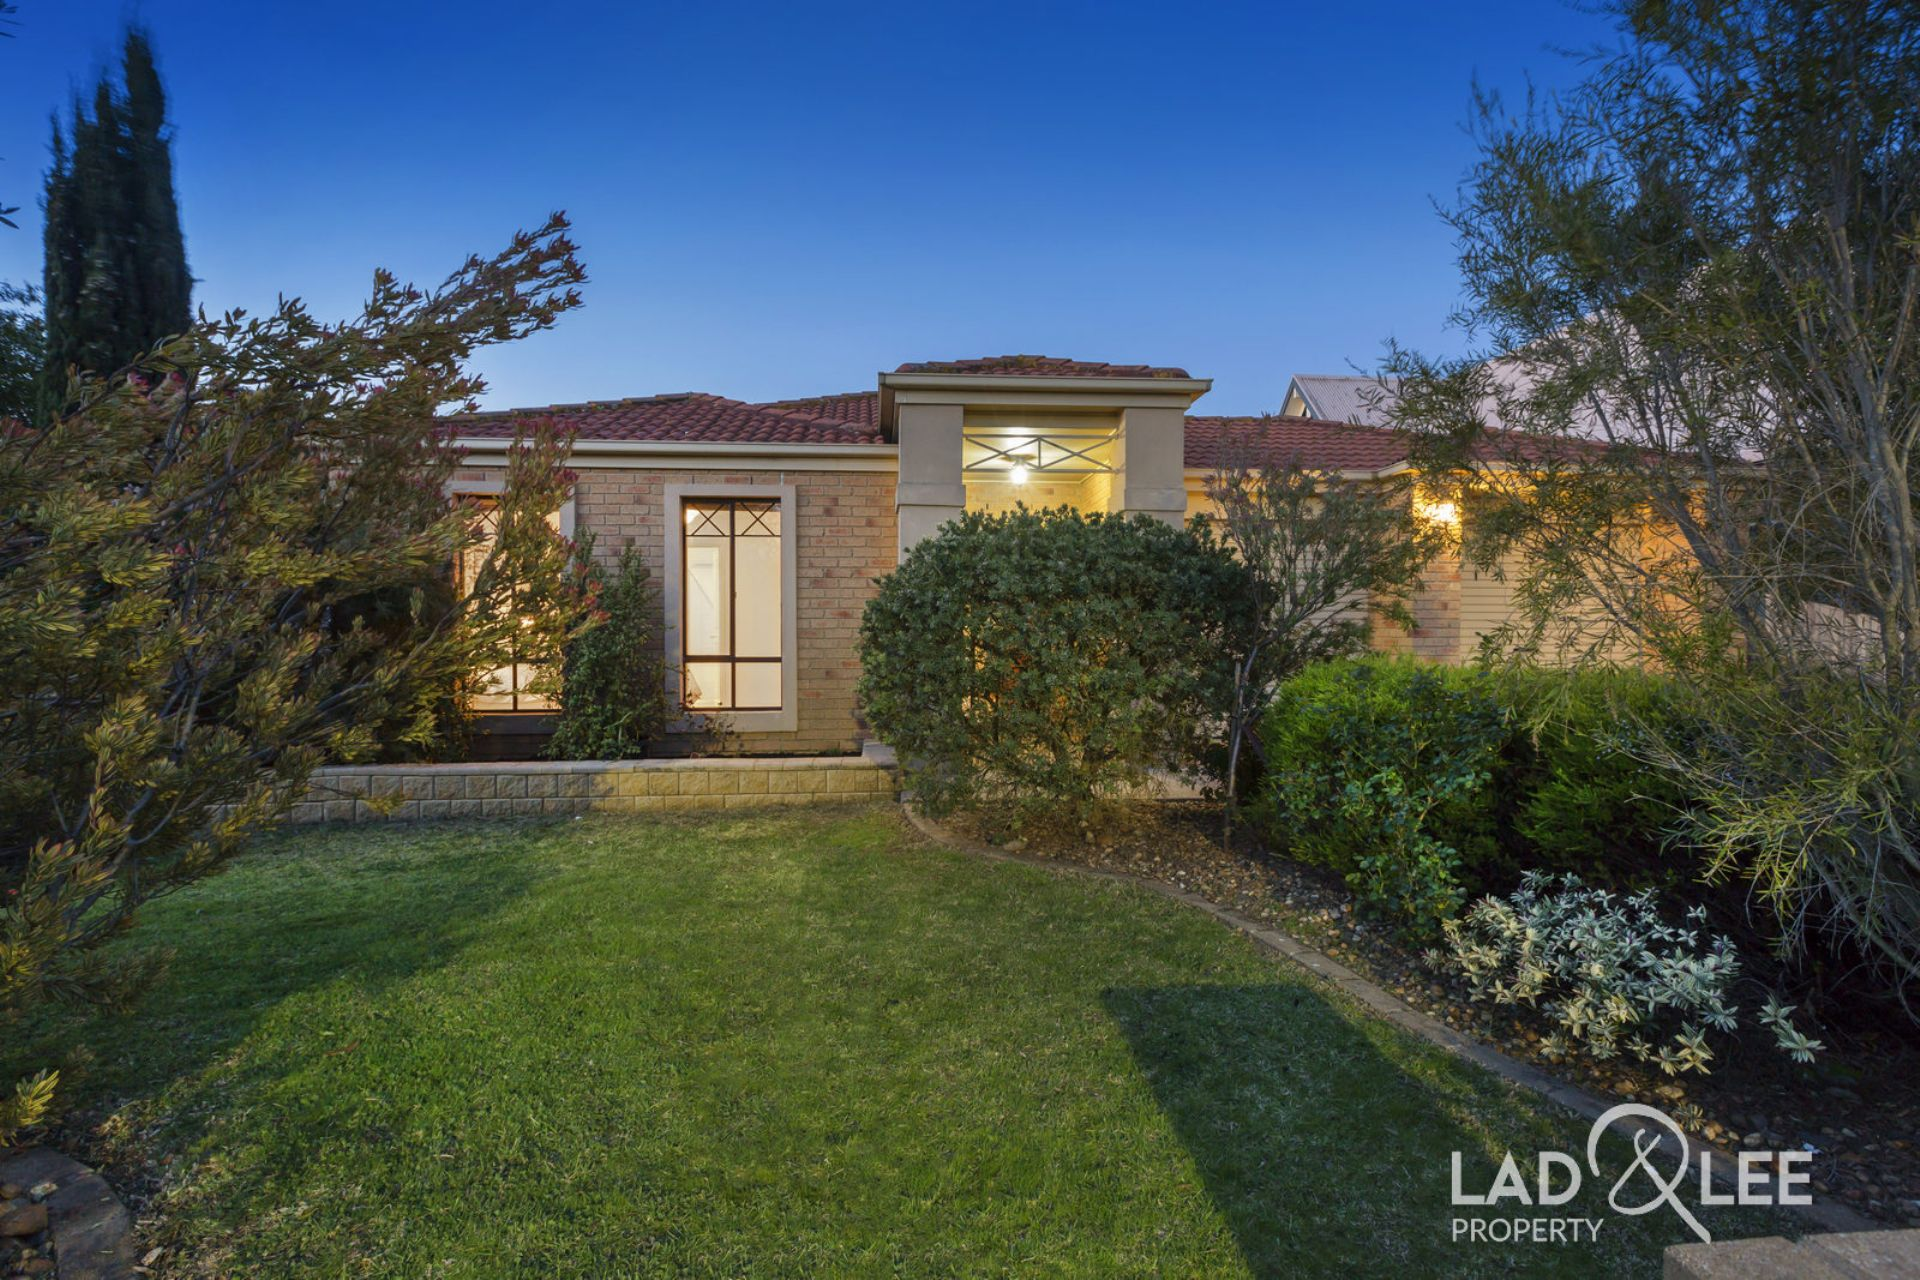 15 Driftwood Court, MOUNT MARTHA, VIC, 3934 - Image